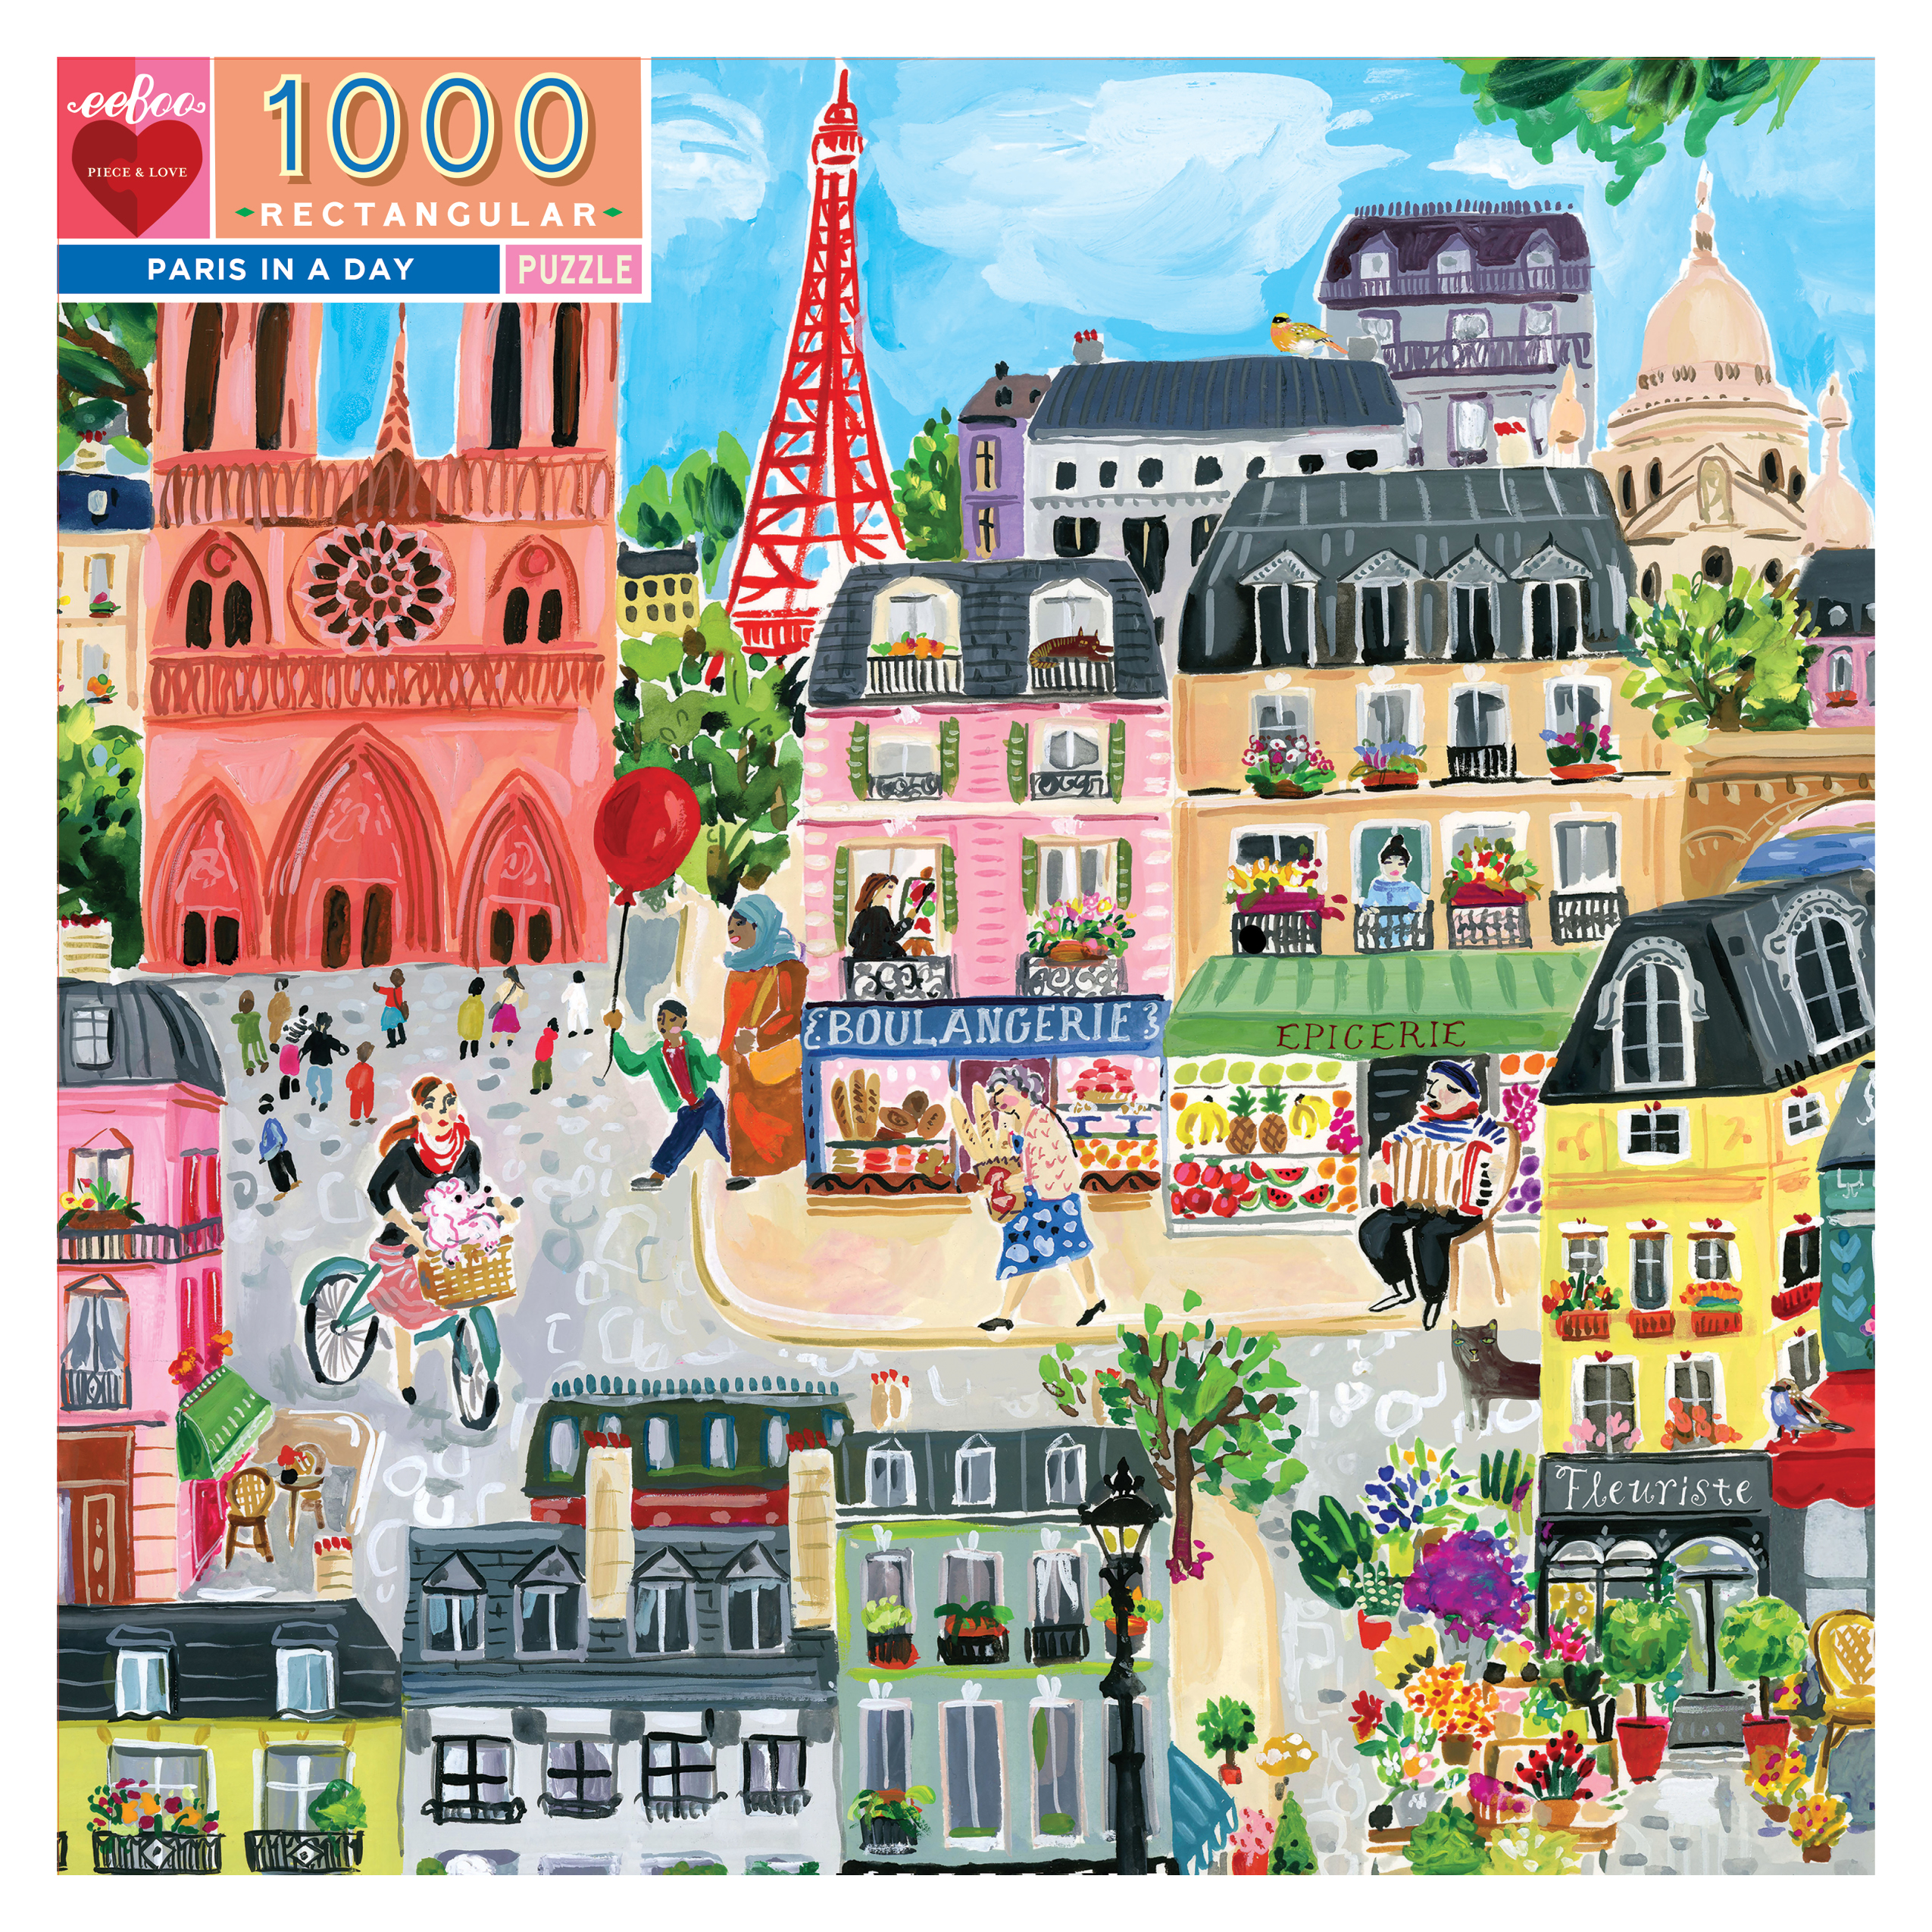 Paris in a day 1000 Piece Jigsaw Puzzle by eeboo